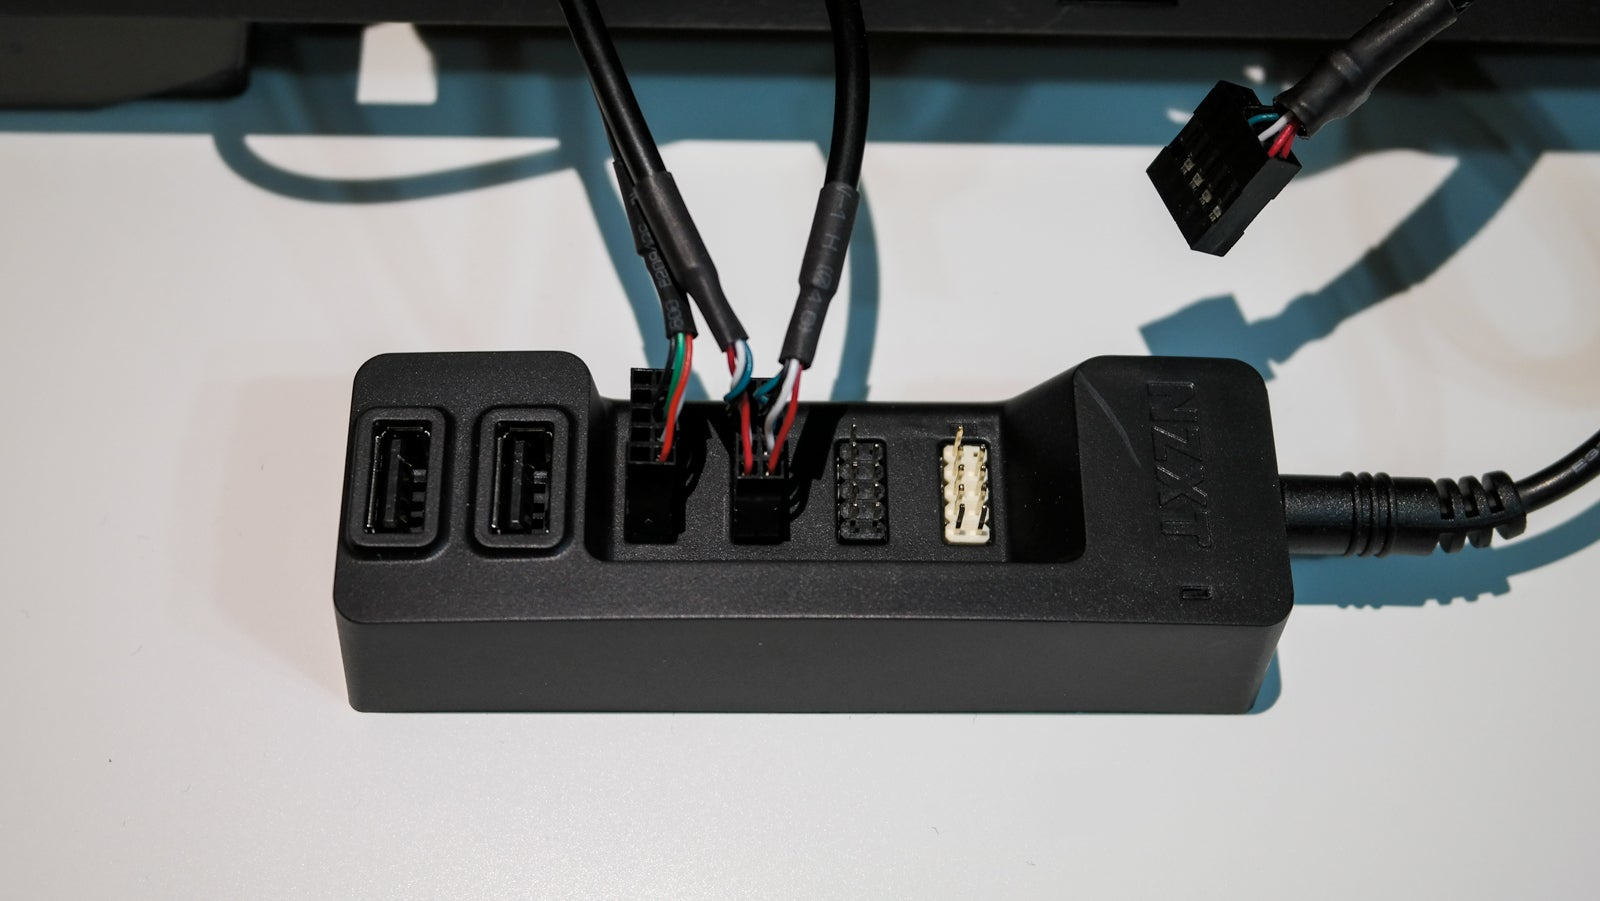 addressable led strip wiring diagram plantar fasciitis pimp your pc with an rgb lighting kit | pcworld